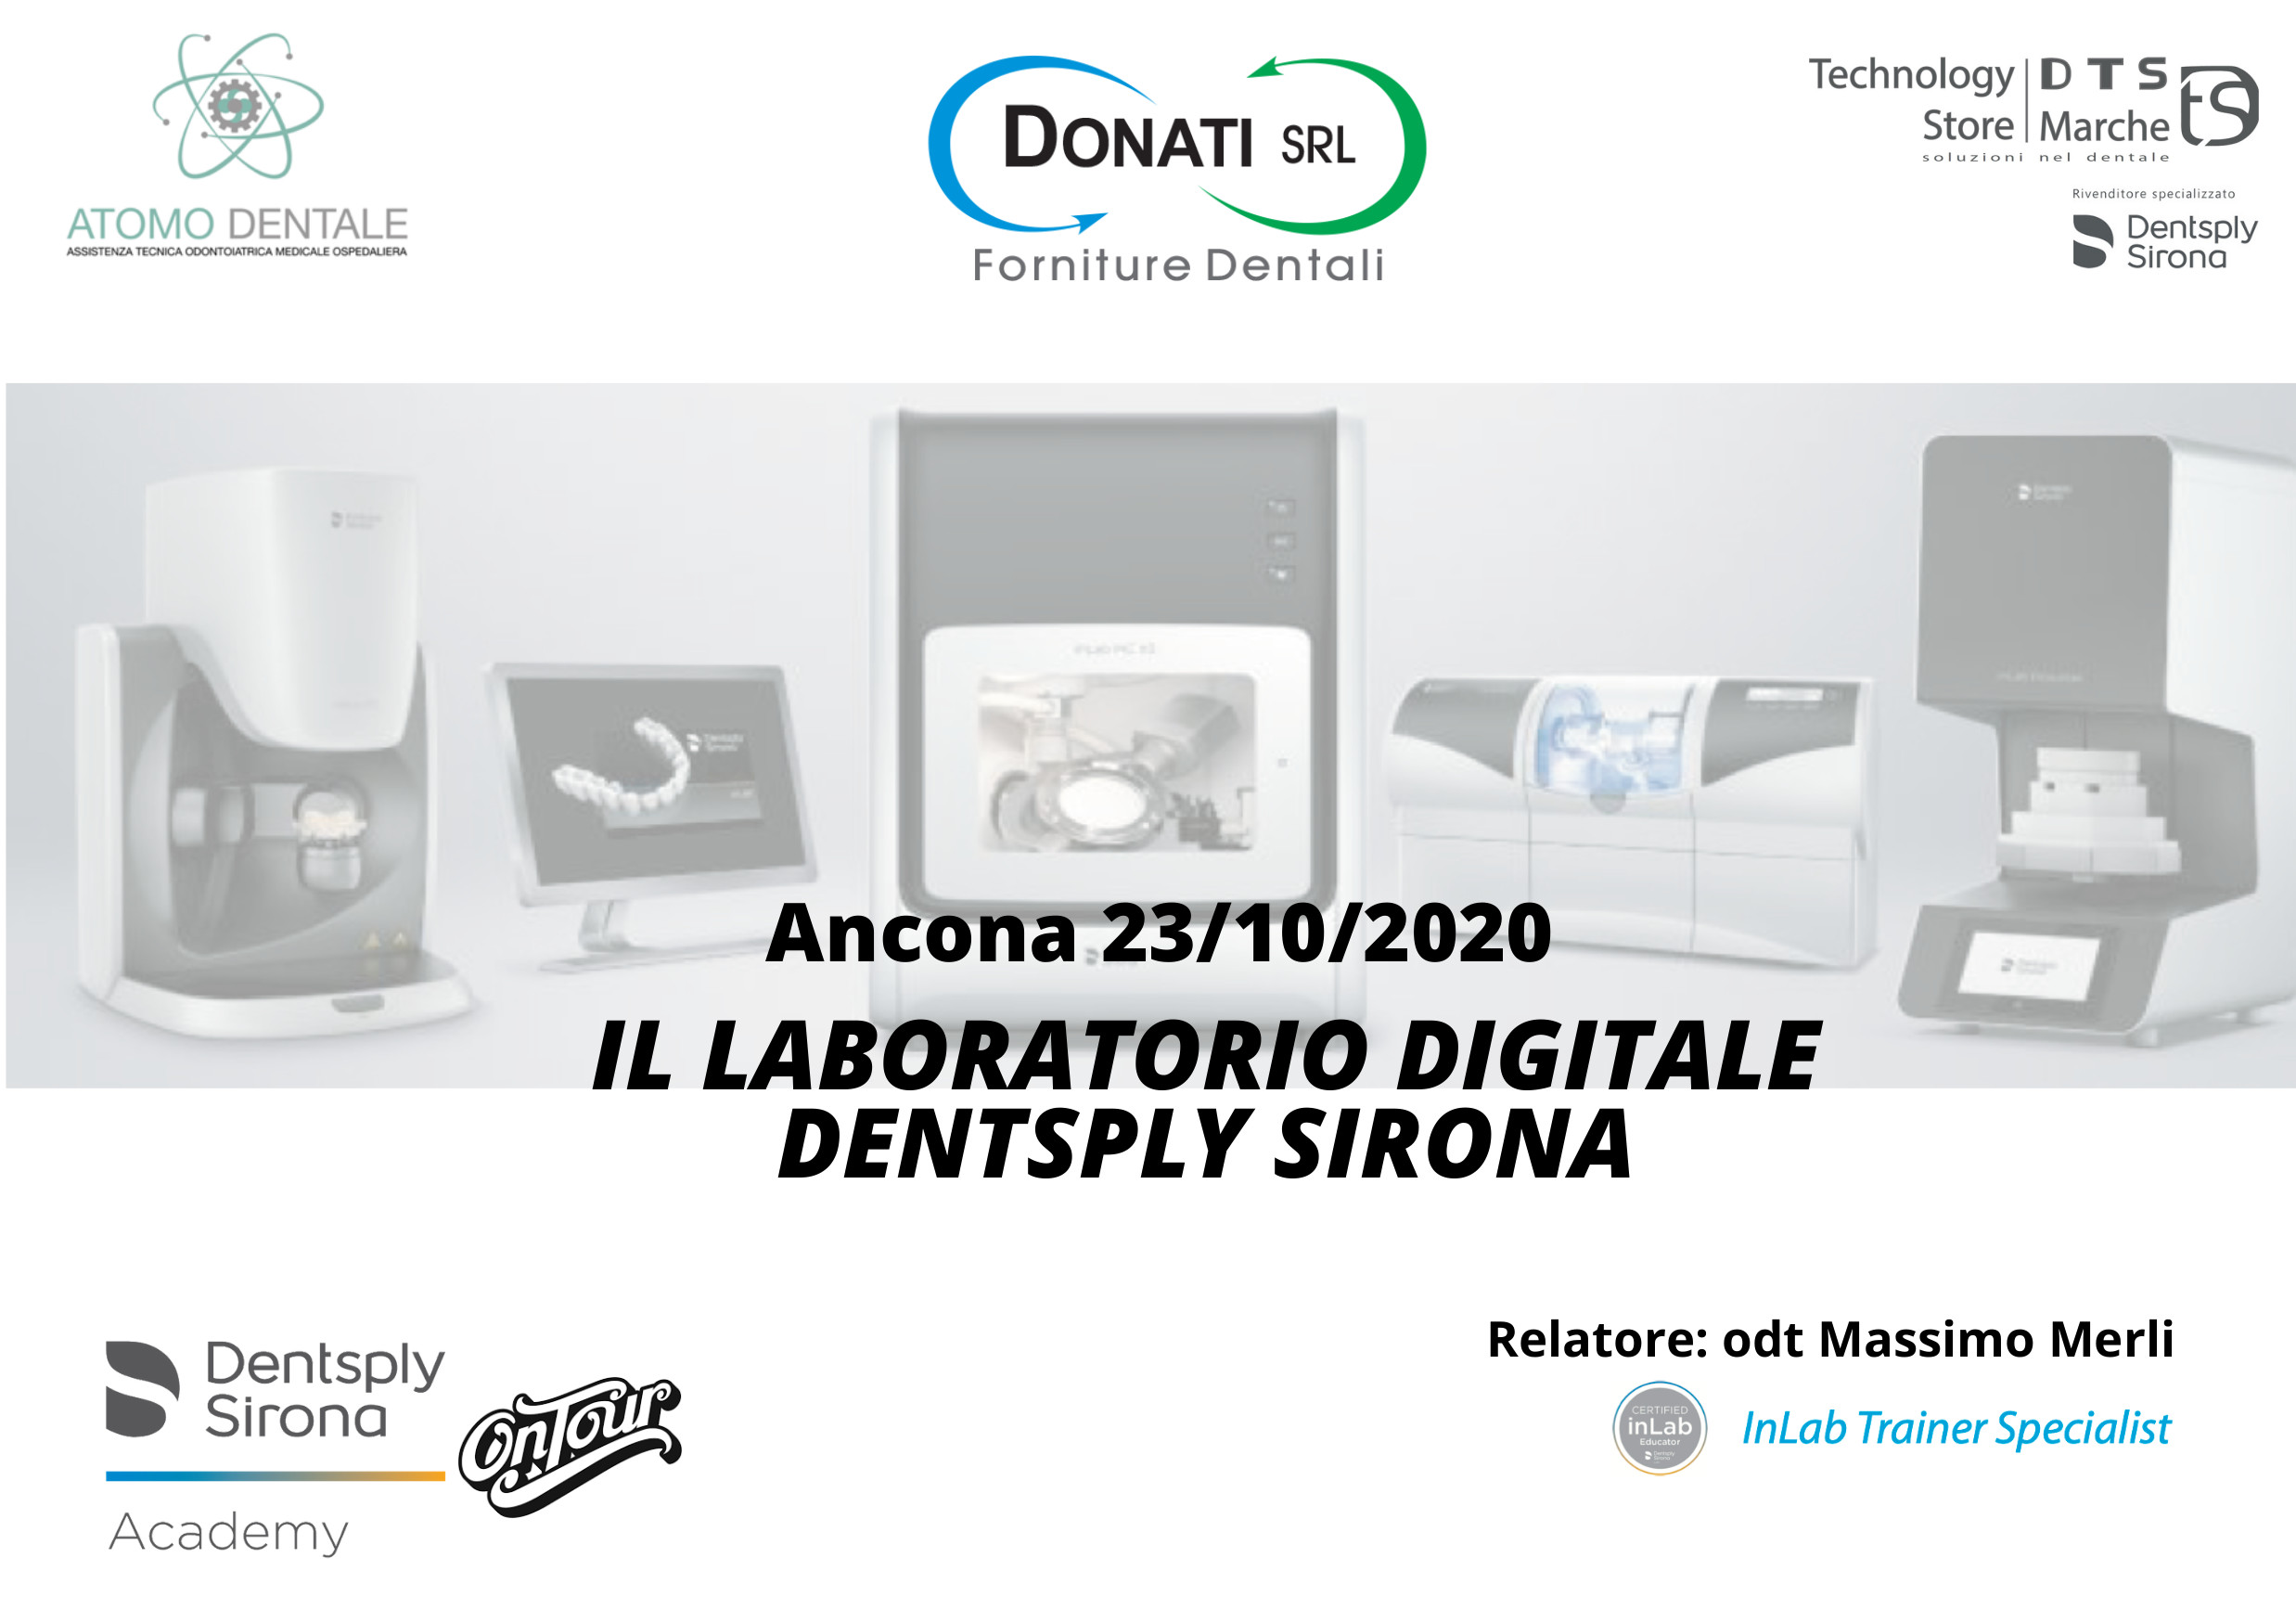 Il laboratorio digitale - Dentsply Sirona